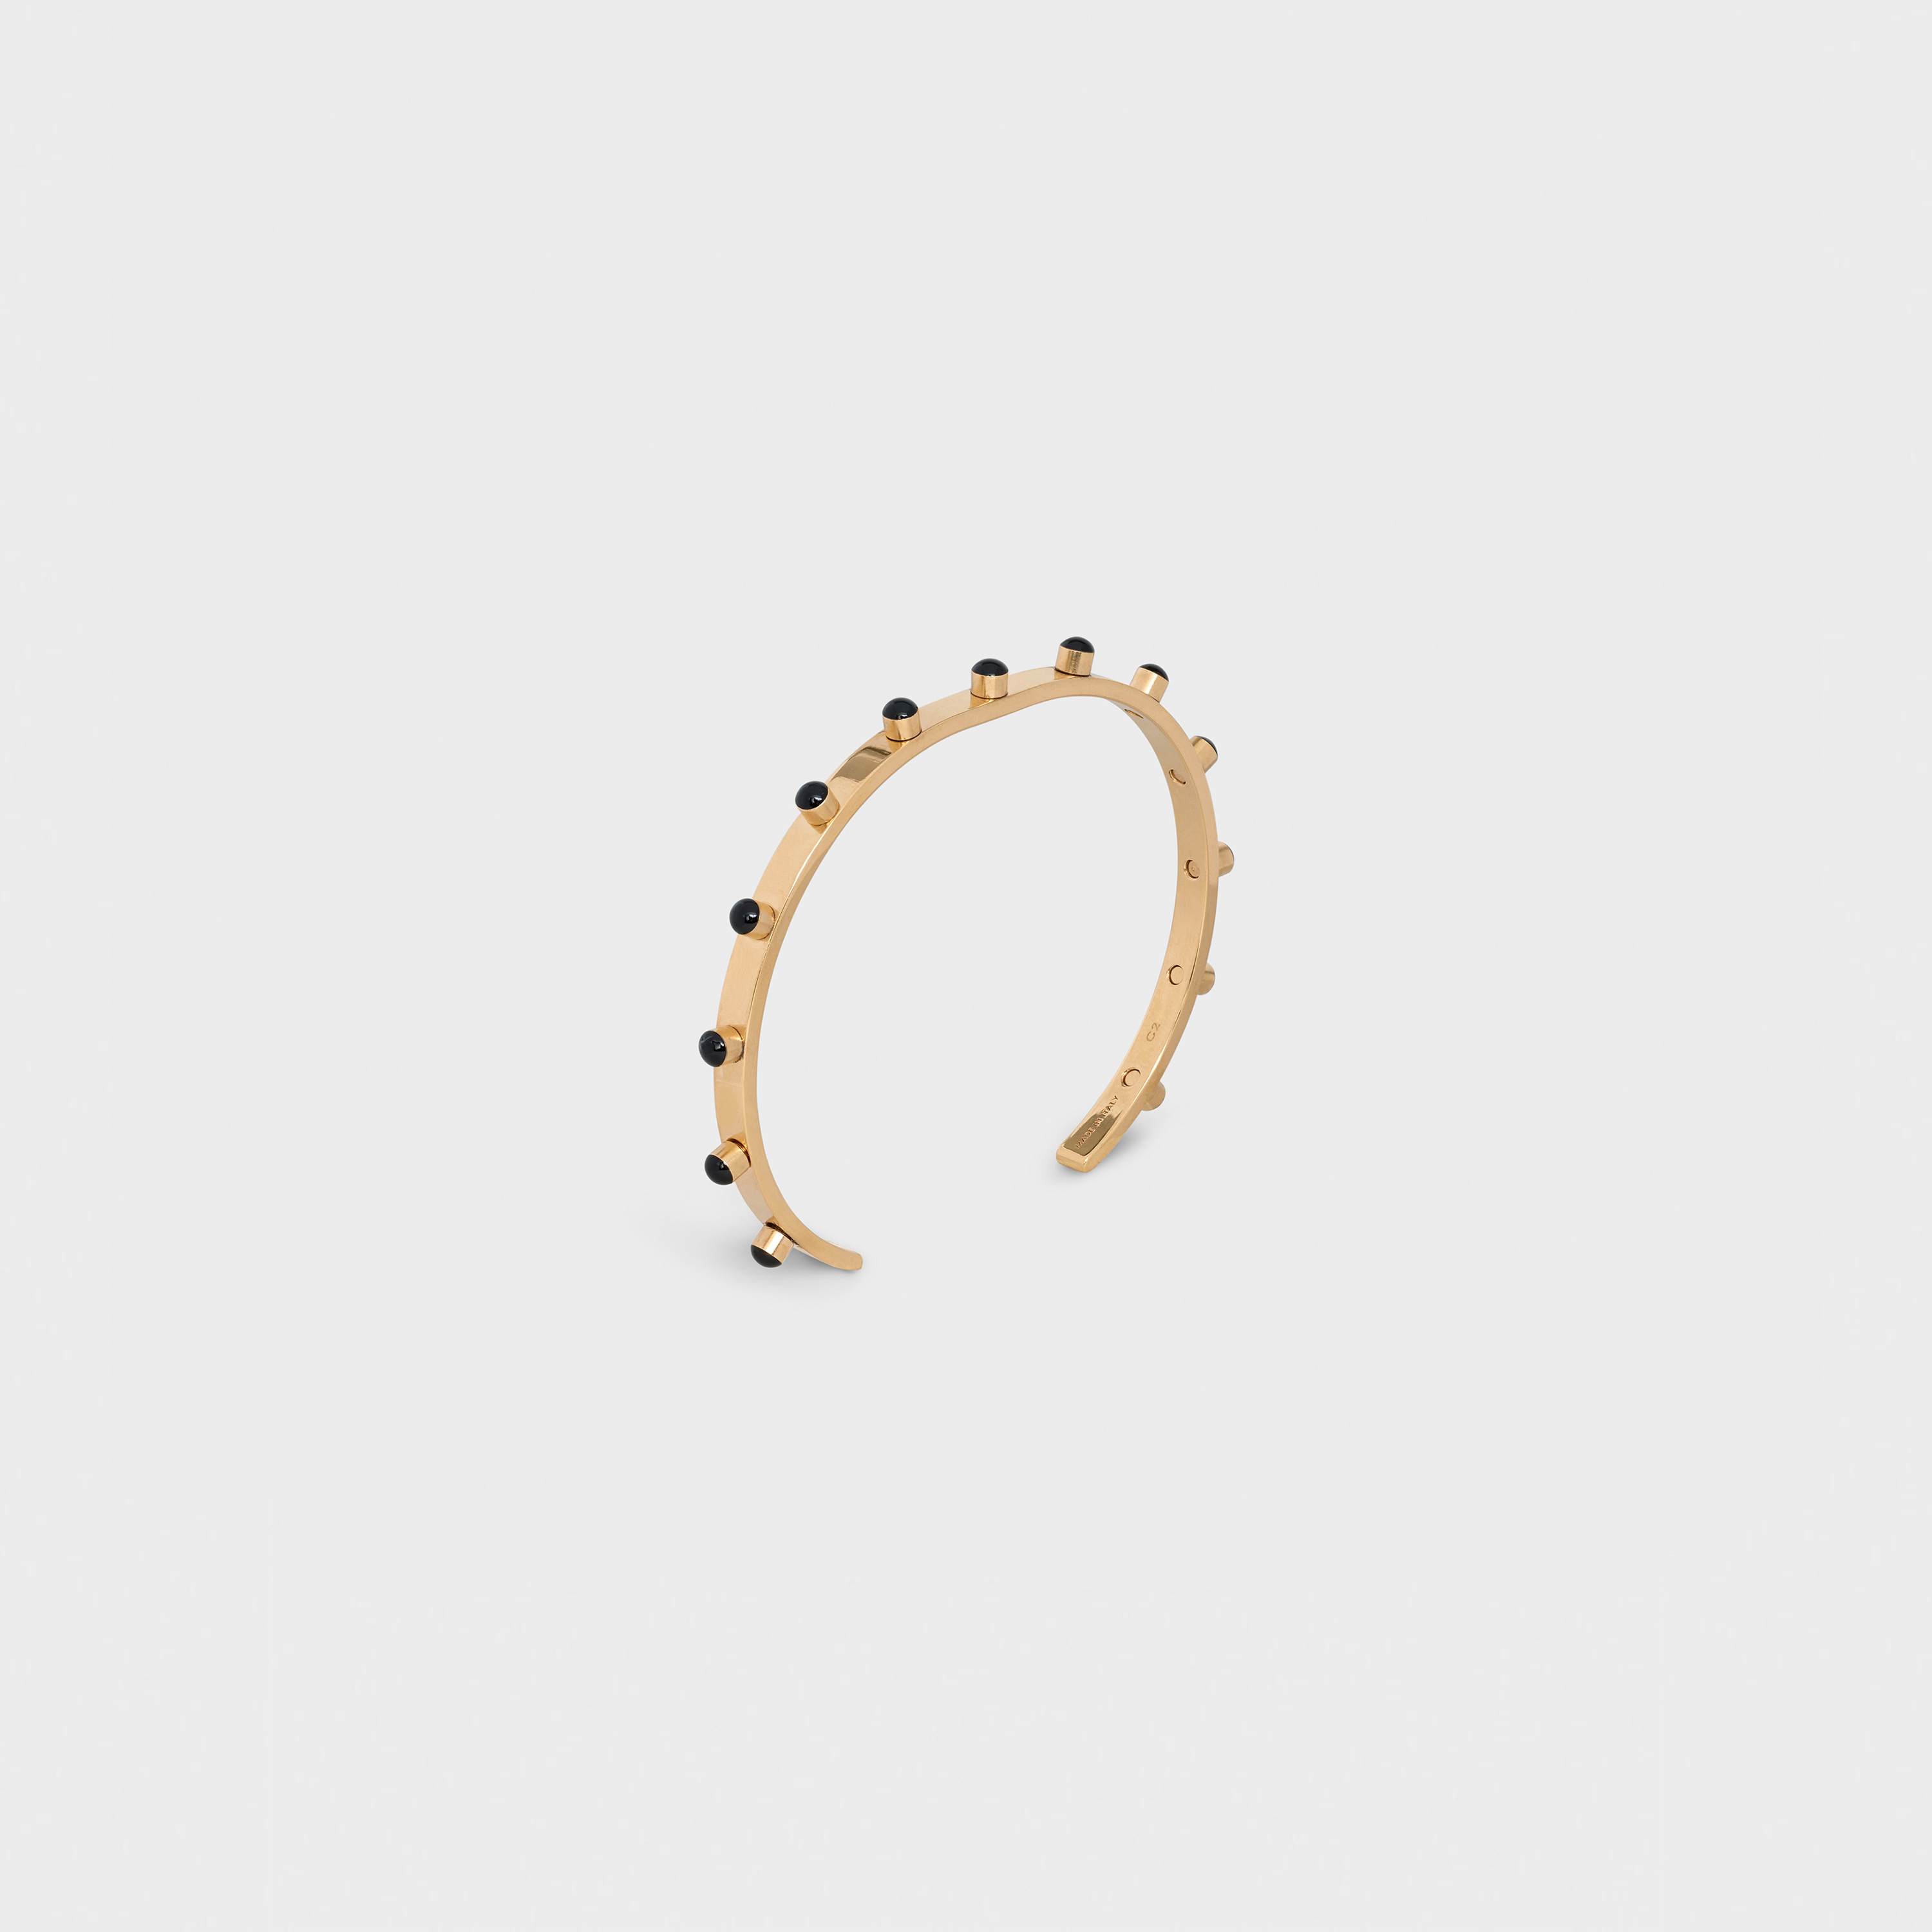 Technicolor Bracelet in Brass with Gold finish and Enamel | CELINE